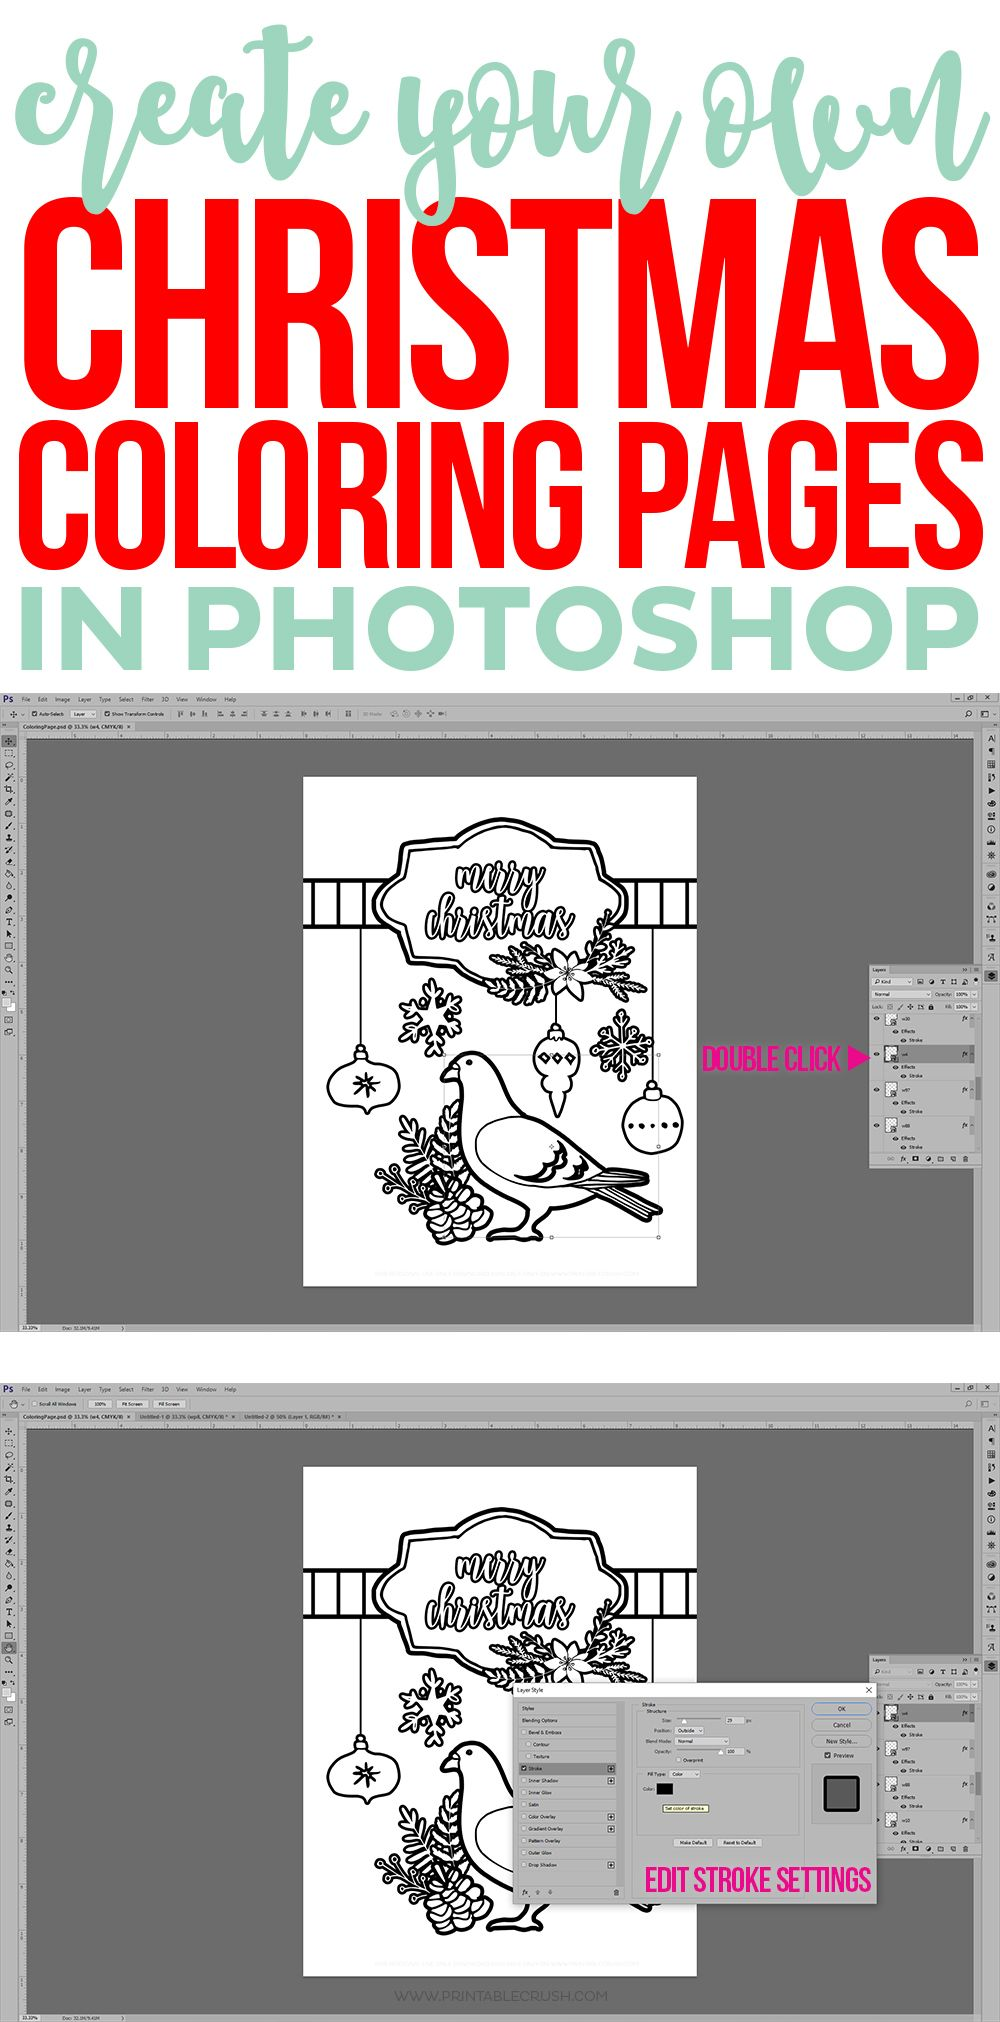 learn to create christmas coloring pages in photoshop in this